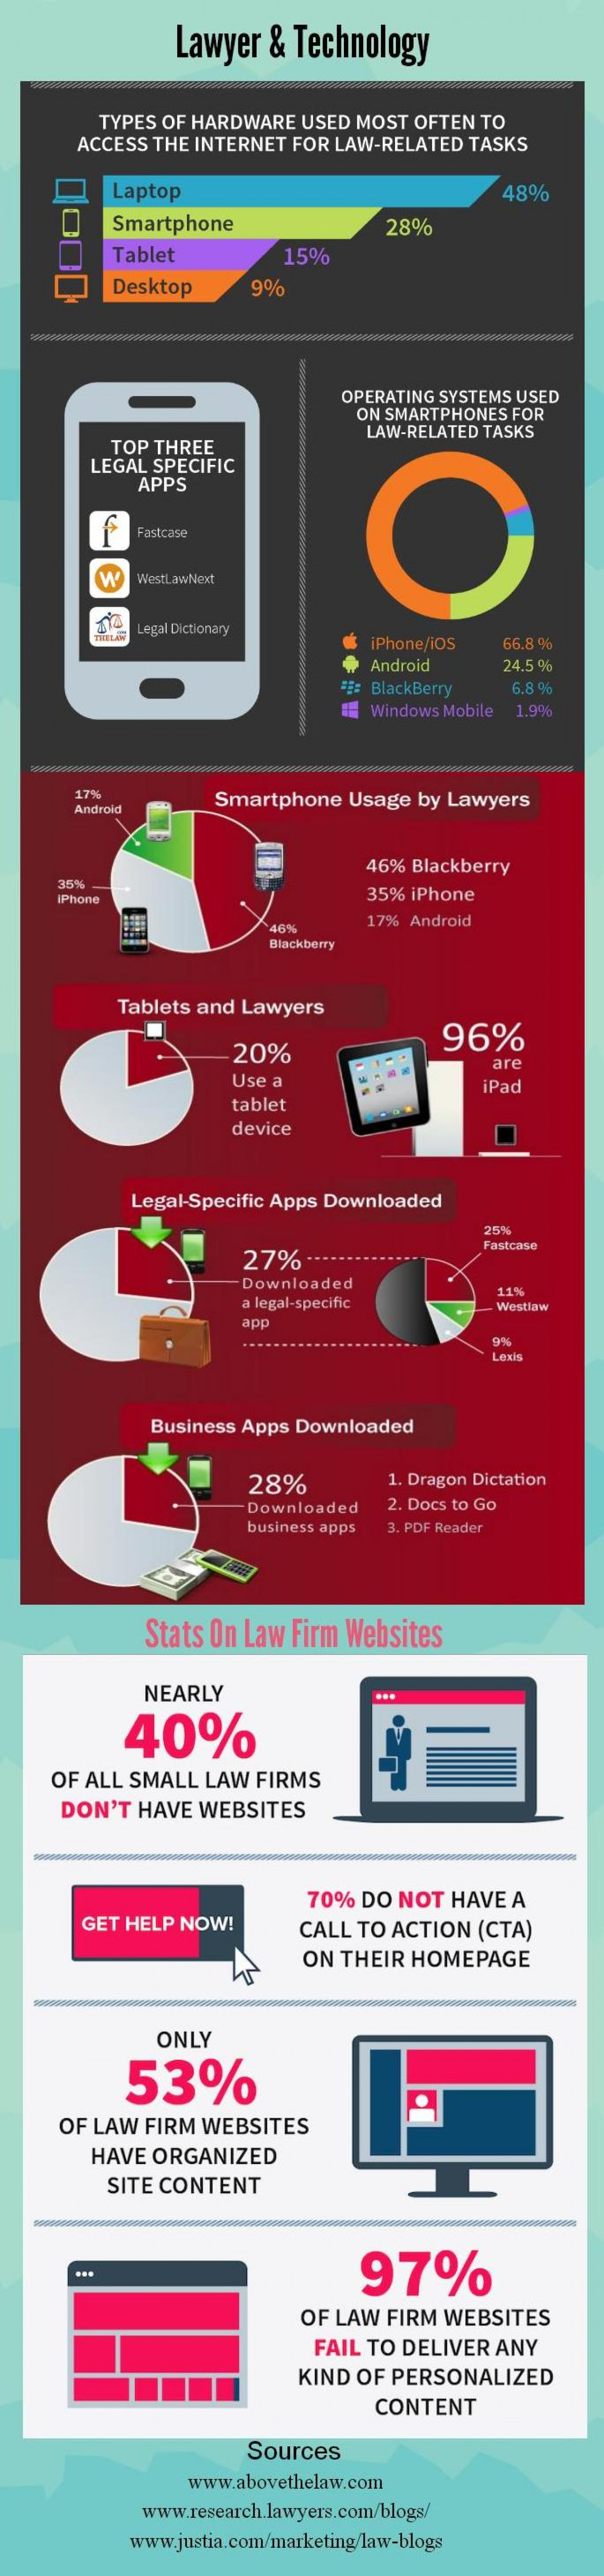 Lawyers and Technology Infographic